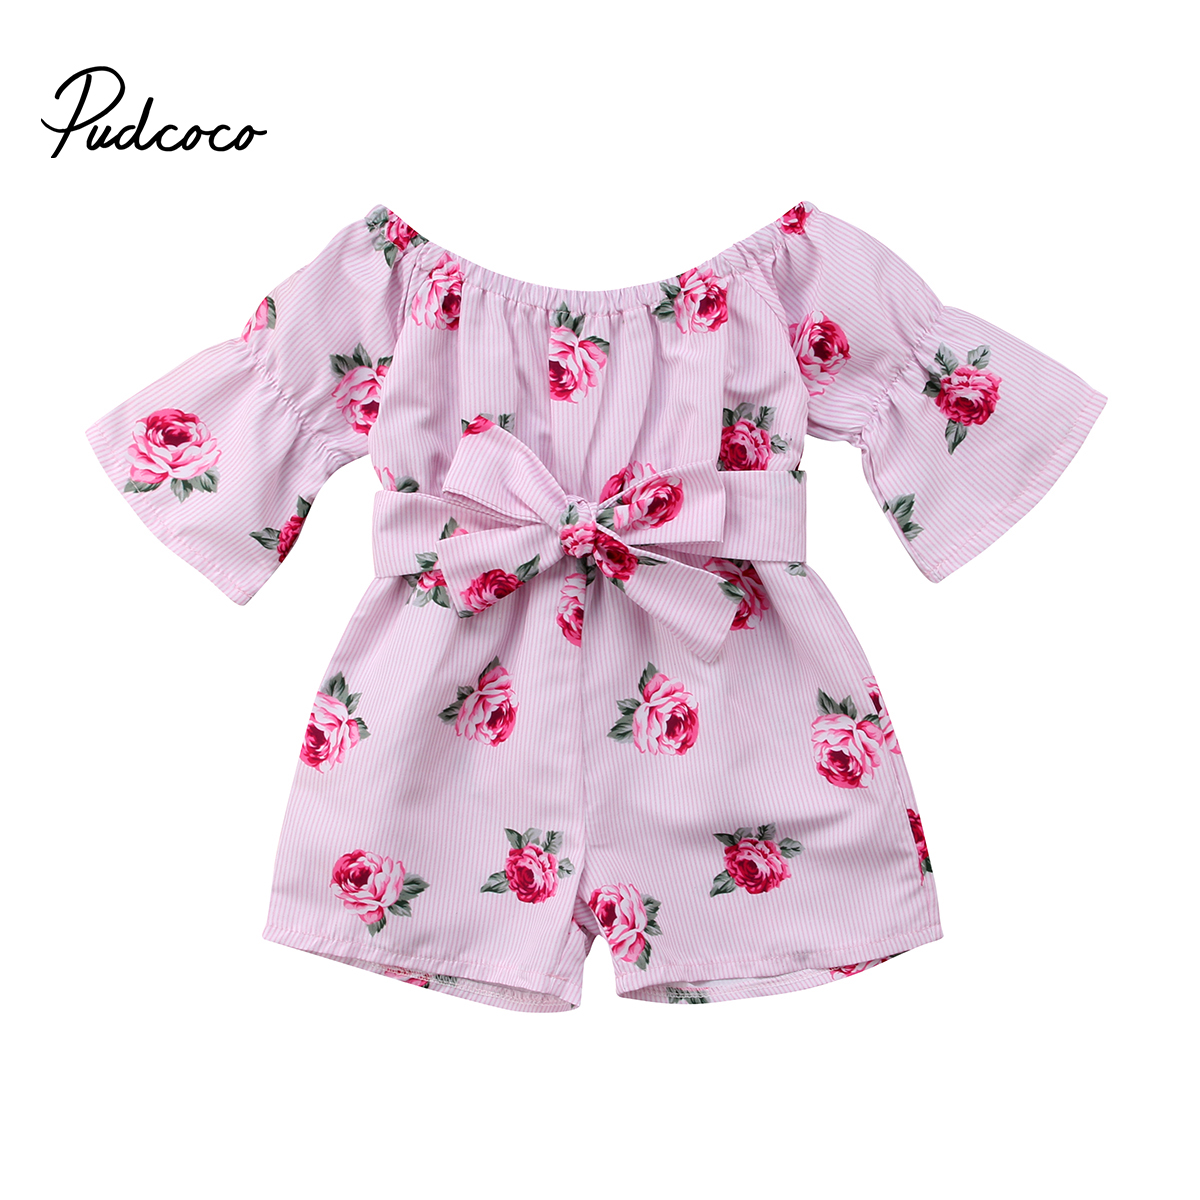 2018 Brand New Princess Baby Girl Floral   Romper   Off shoulder Flare Sleeve Bow Striped Jumpsuit Playsuit Outfit Sunsuit Clothes